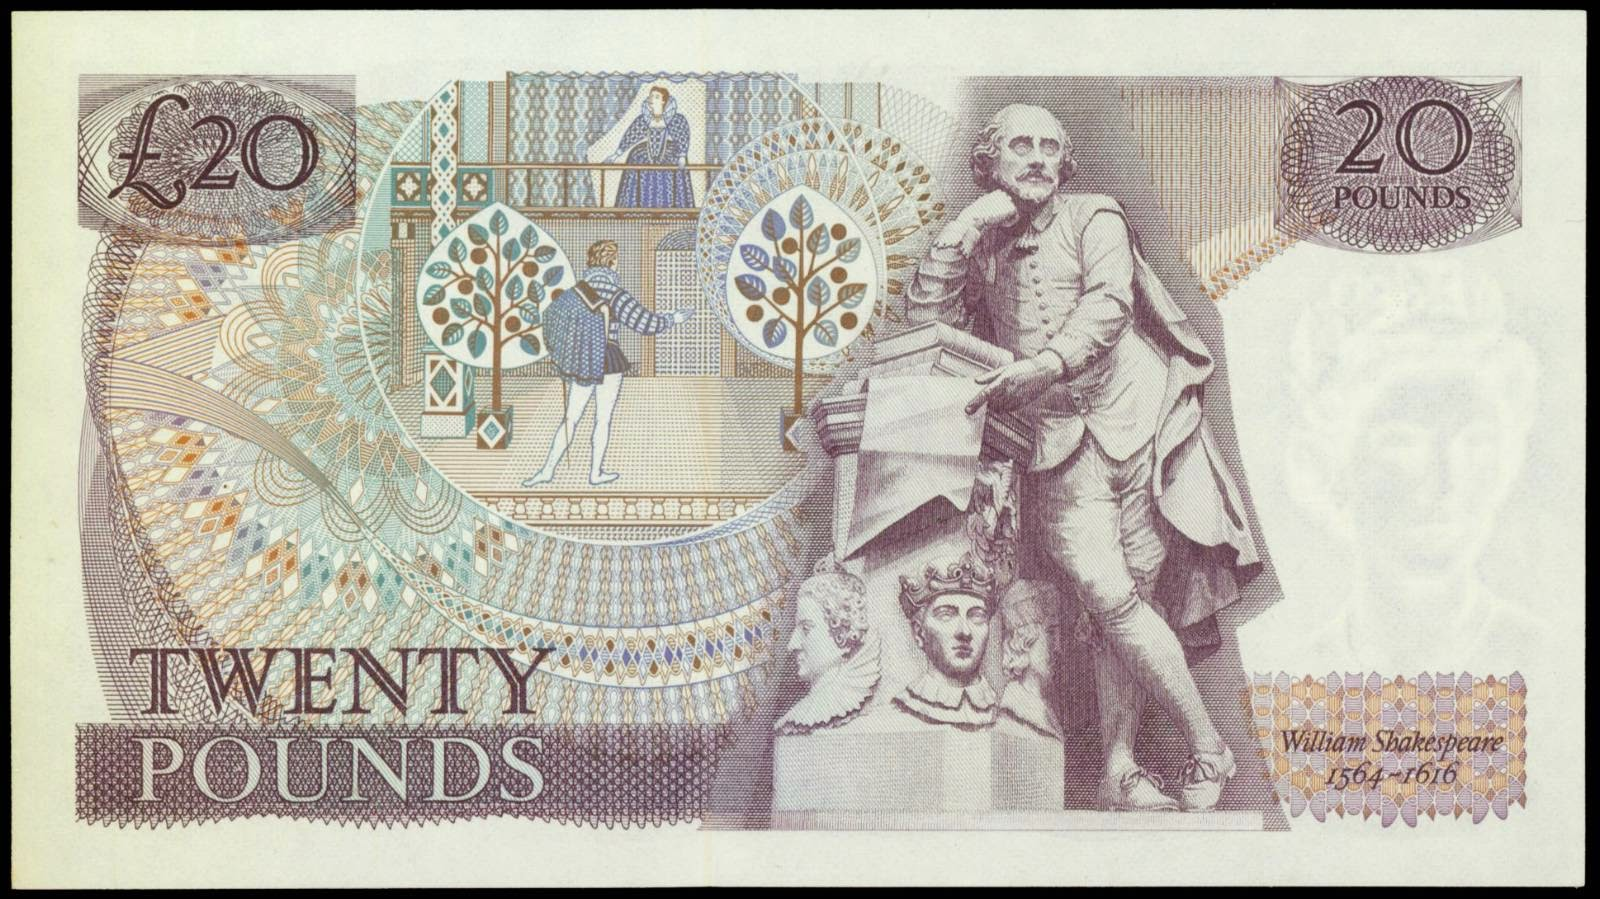 Great Britain banknotes 20 Pounds note William Shakespeare